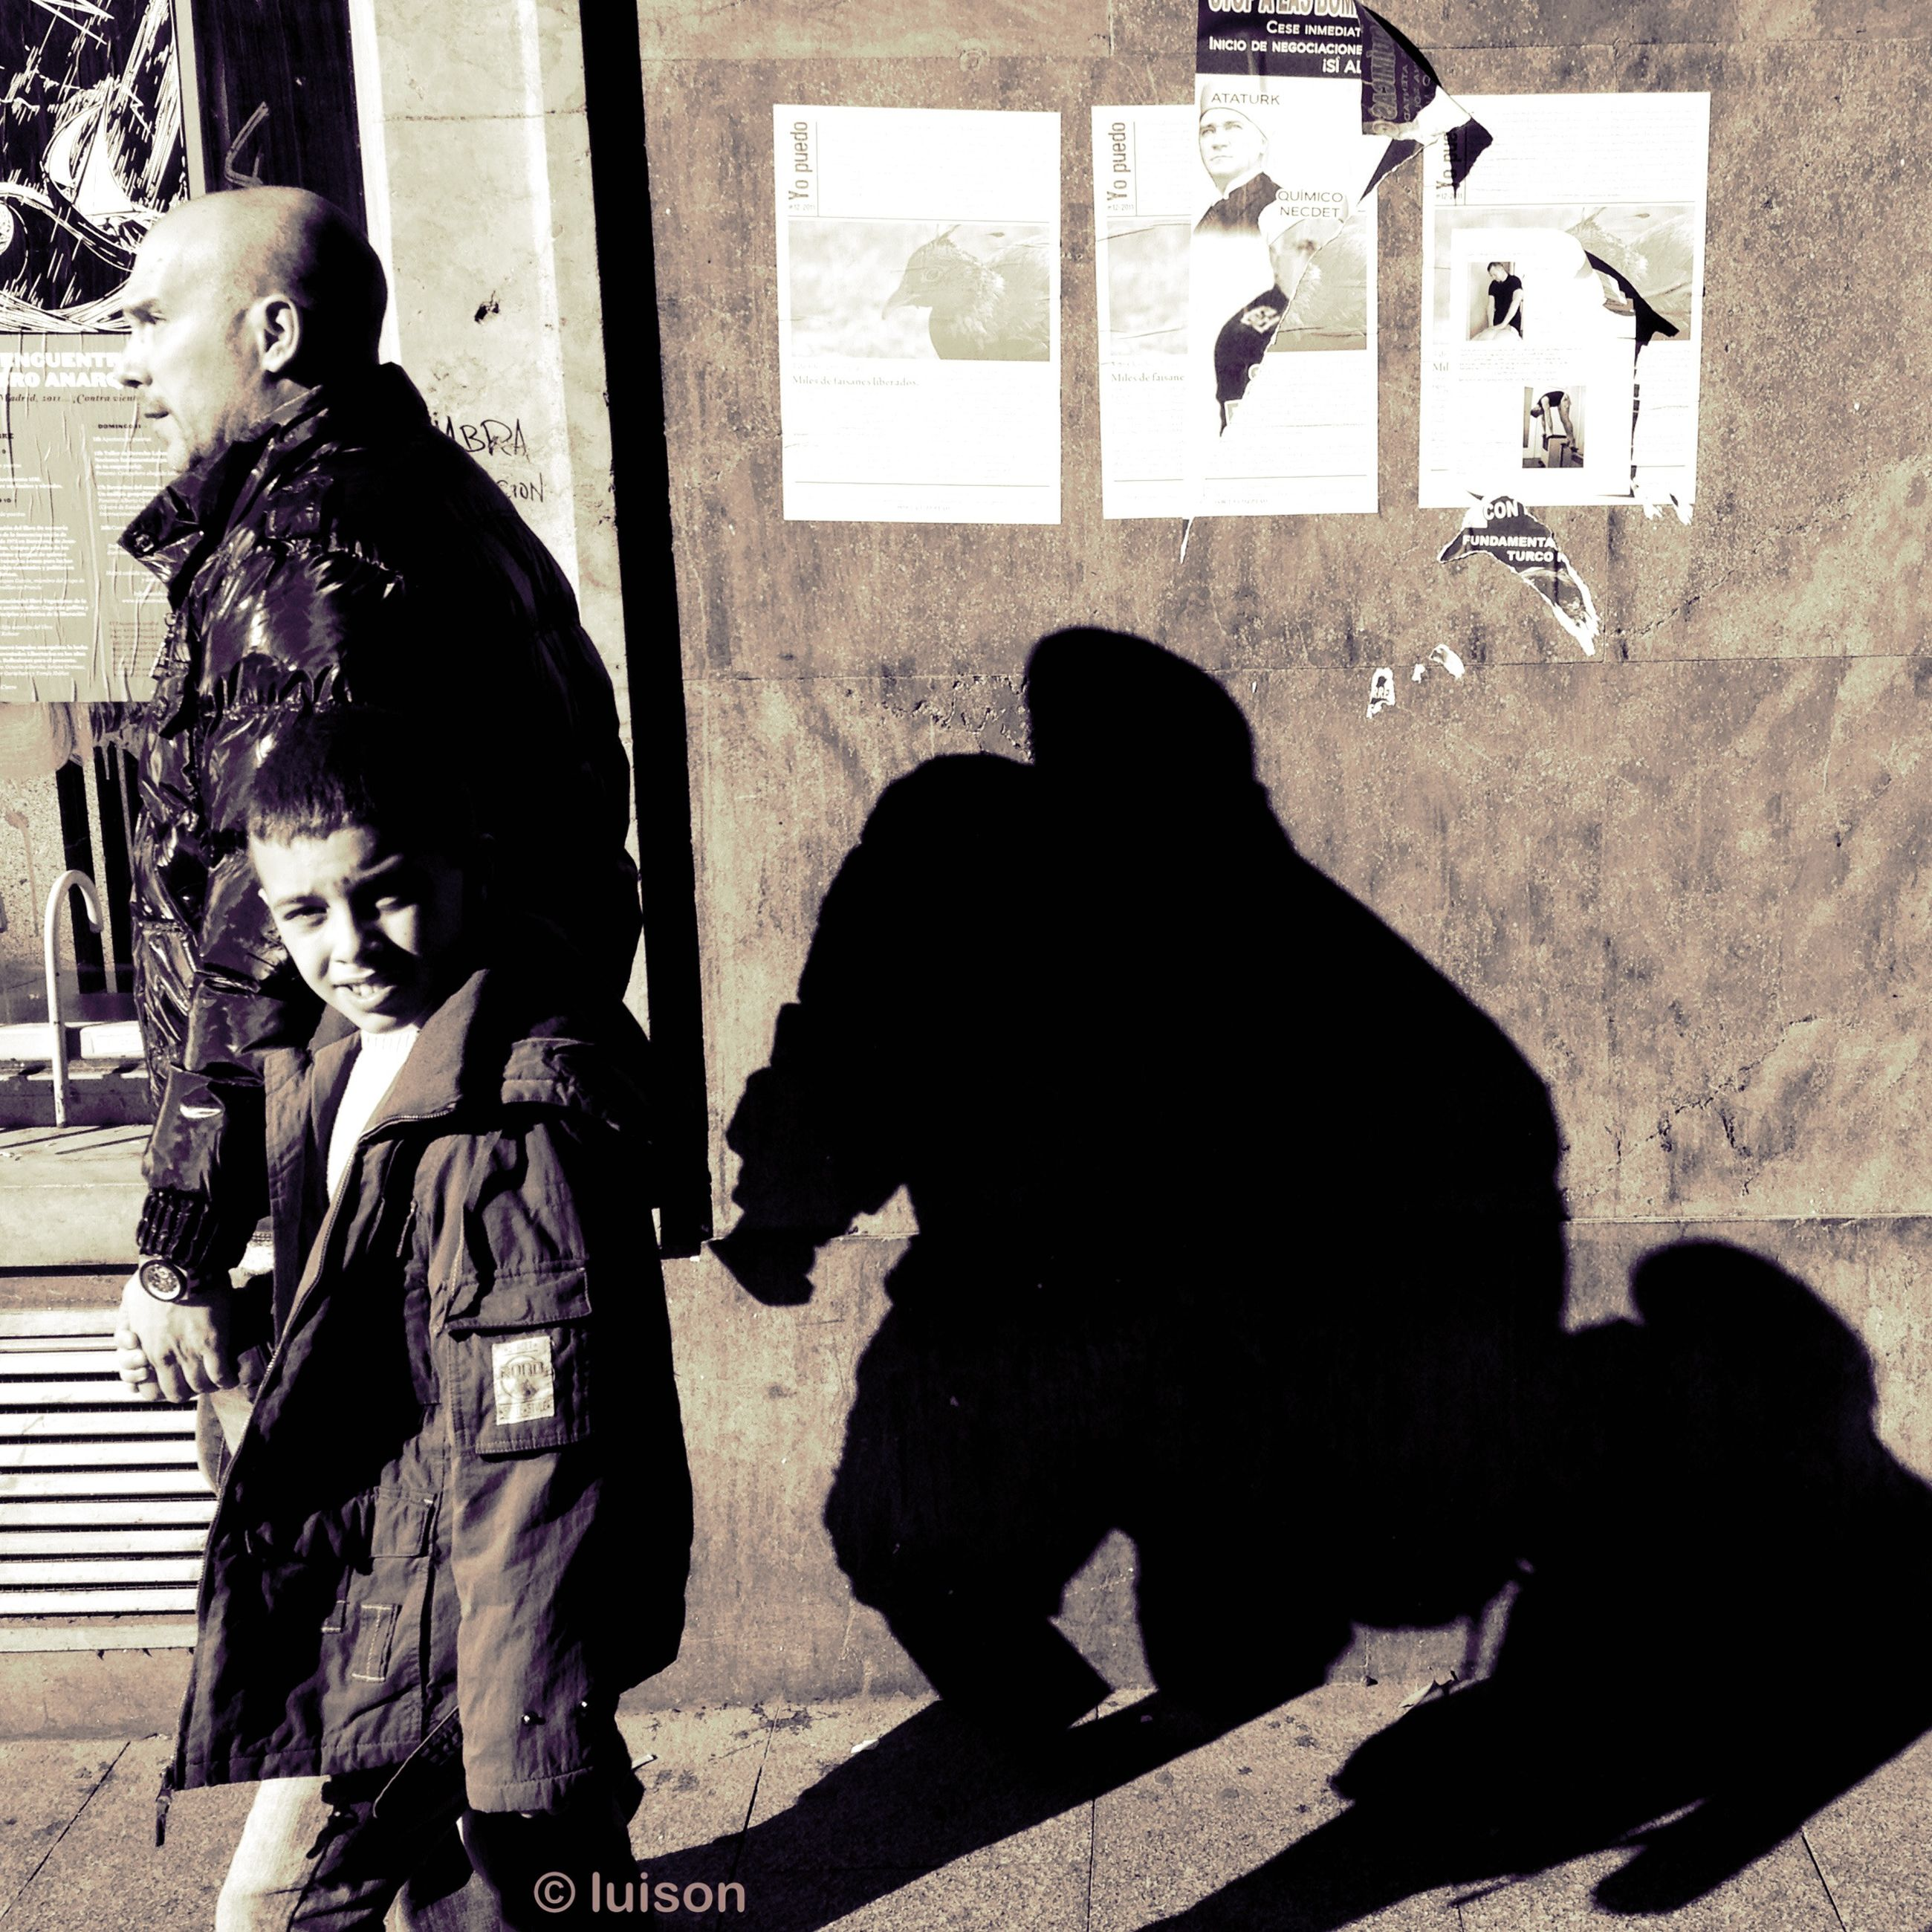 lifestyles, building exterior, built structure, architecture, leisure activity, wall - building feature, togetherness, text, human representation, street, communication, standing, full length, bonding, love, outdoors, day, shadow